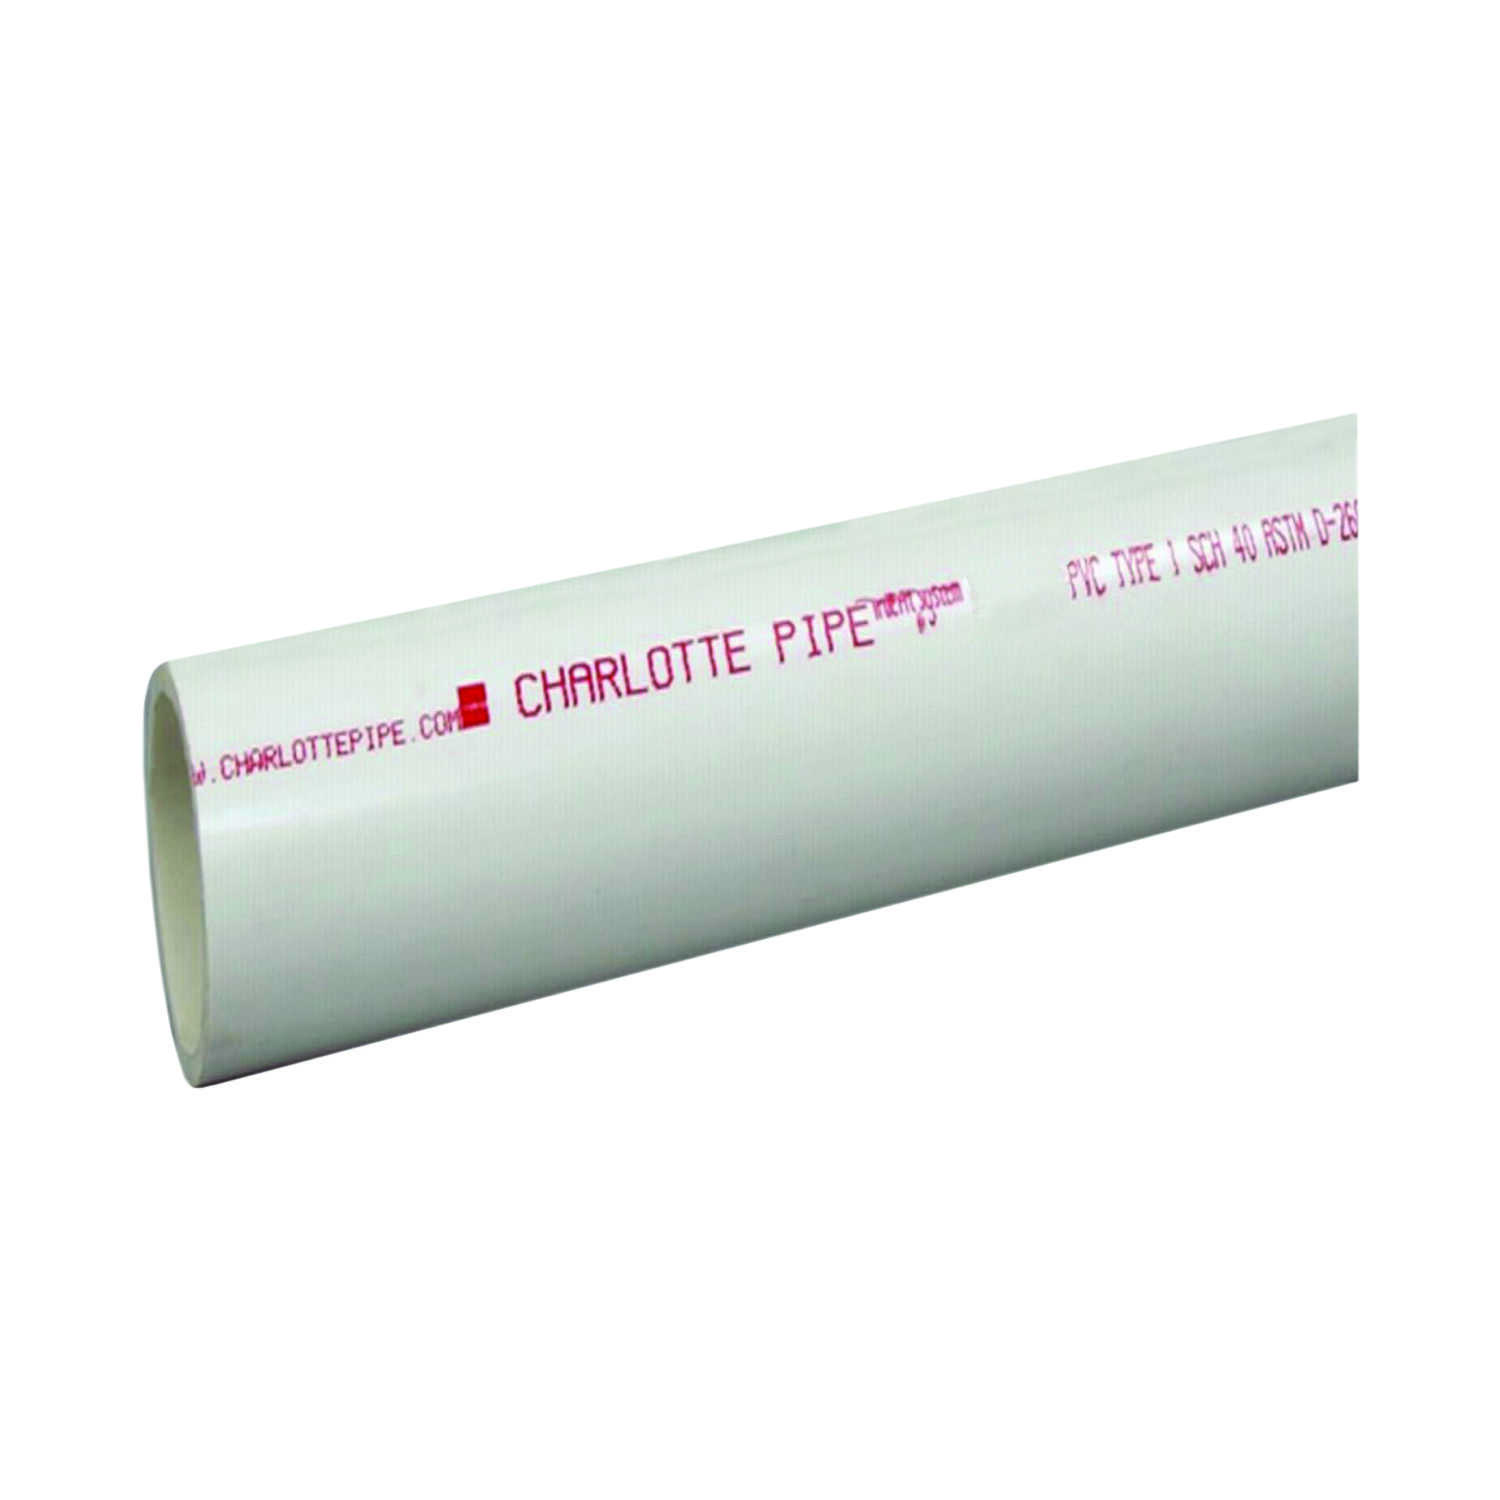 Cresline  PVC Pipe  2 in. Dia. x 20 ft. L Plain End  Schedule 40  280 psi